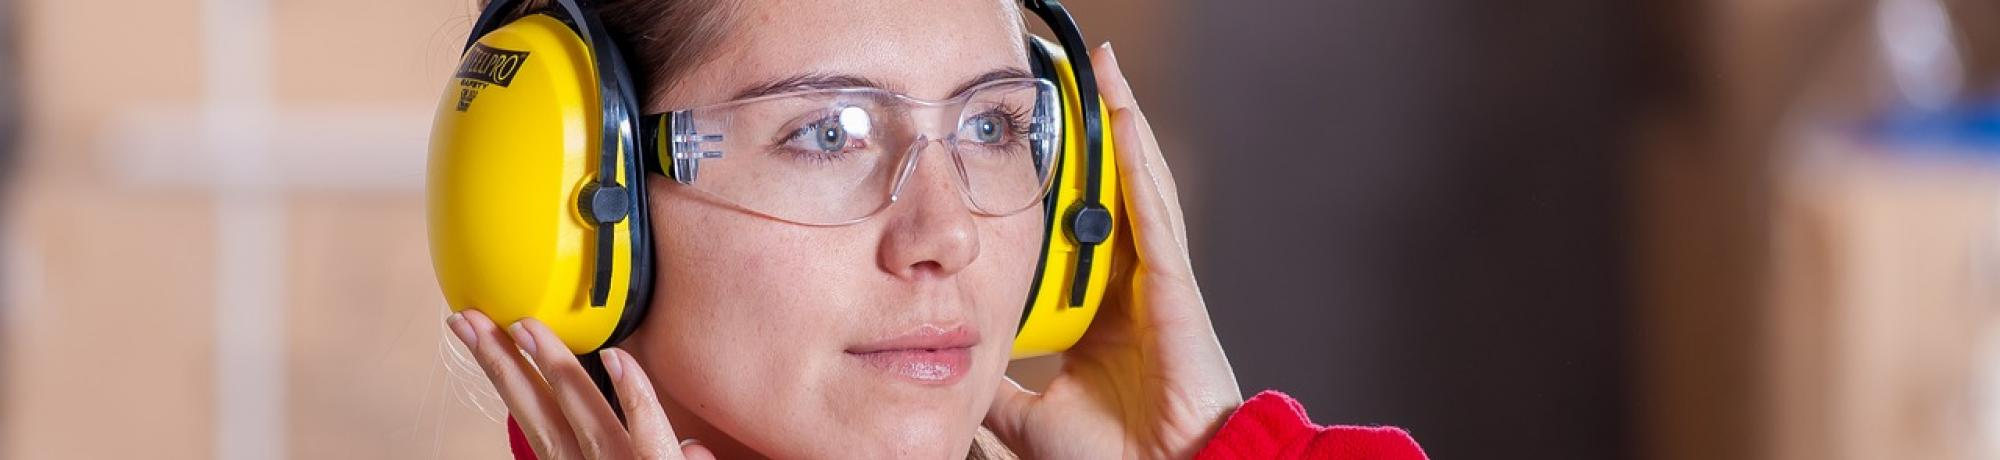 Female industrial worker wearing hearing protection